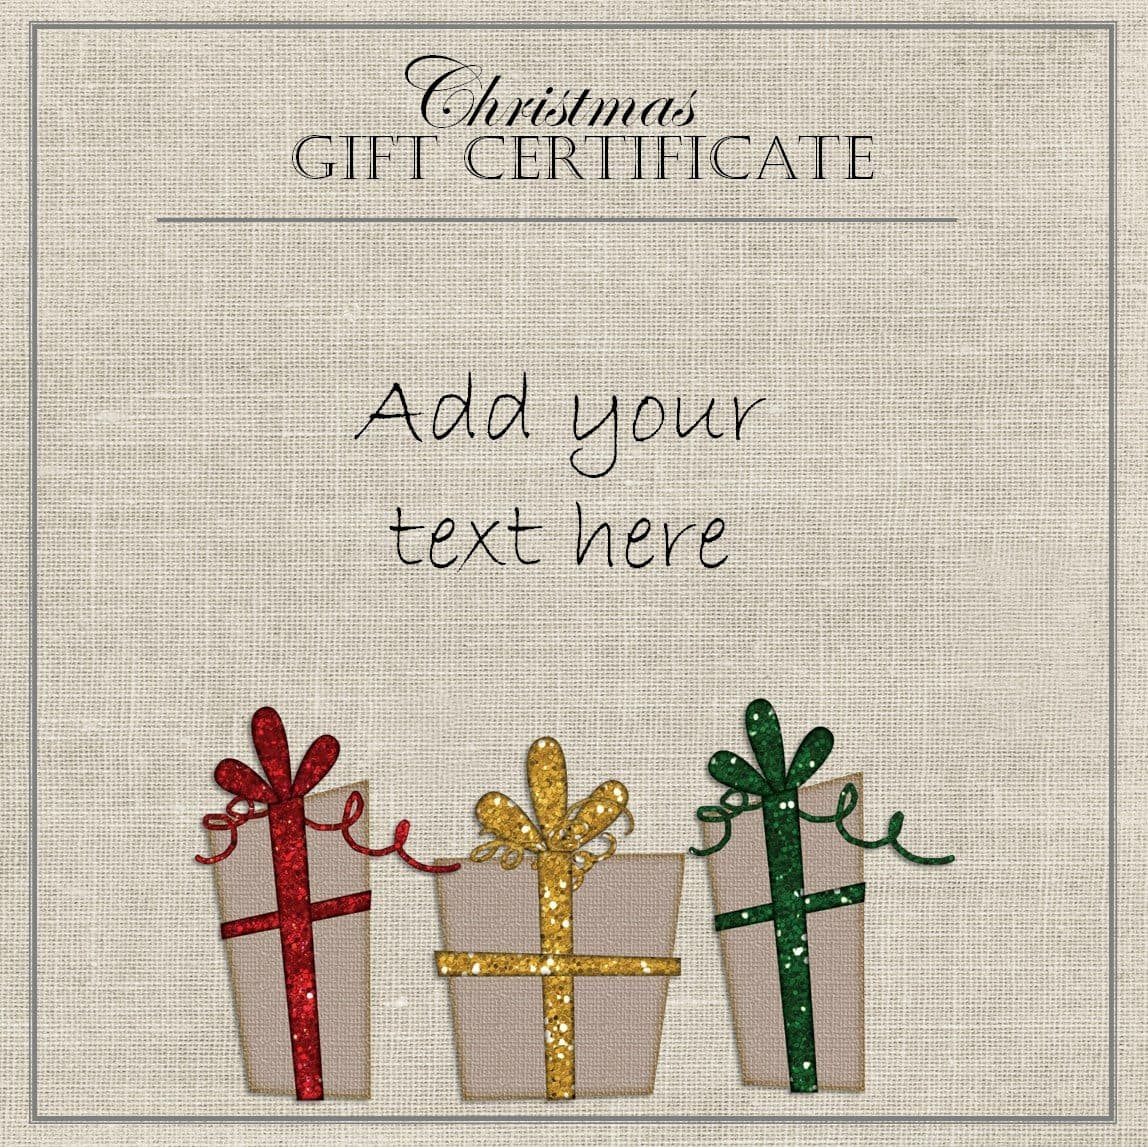 Free christmas gift certificate template customize online download elegant gift certificate template with three gifts with red yellow and green ribbons yadclub Image collections